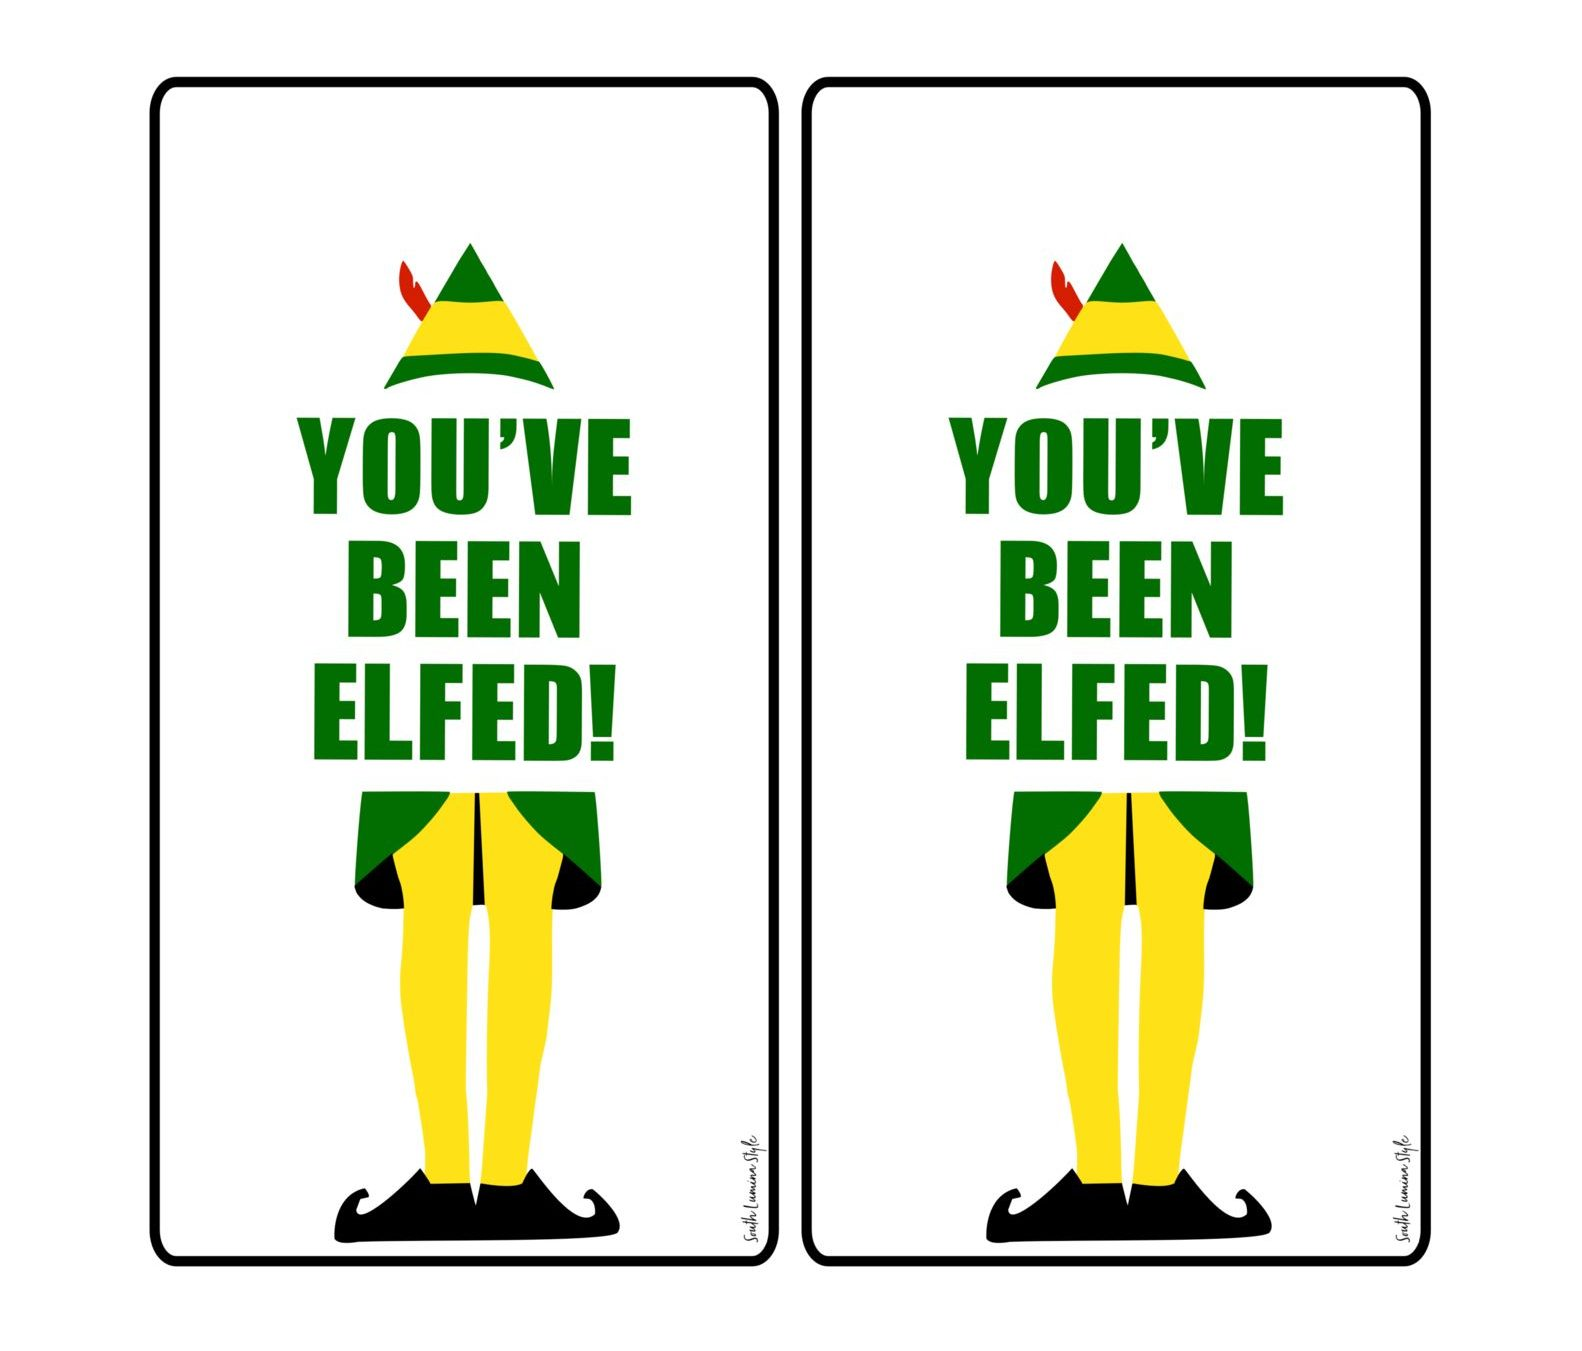 photograph regarding You've Been Elfed Printable known as Youve Been Elfed Printable Present Tags - South Lumina Layout